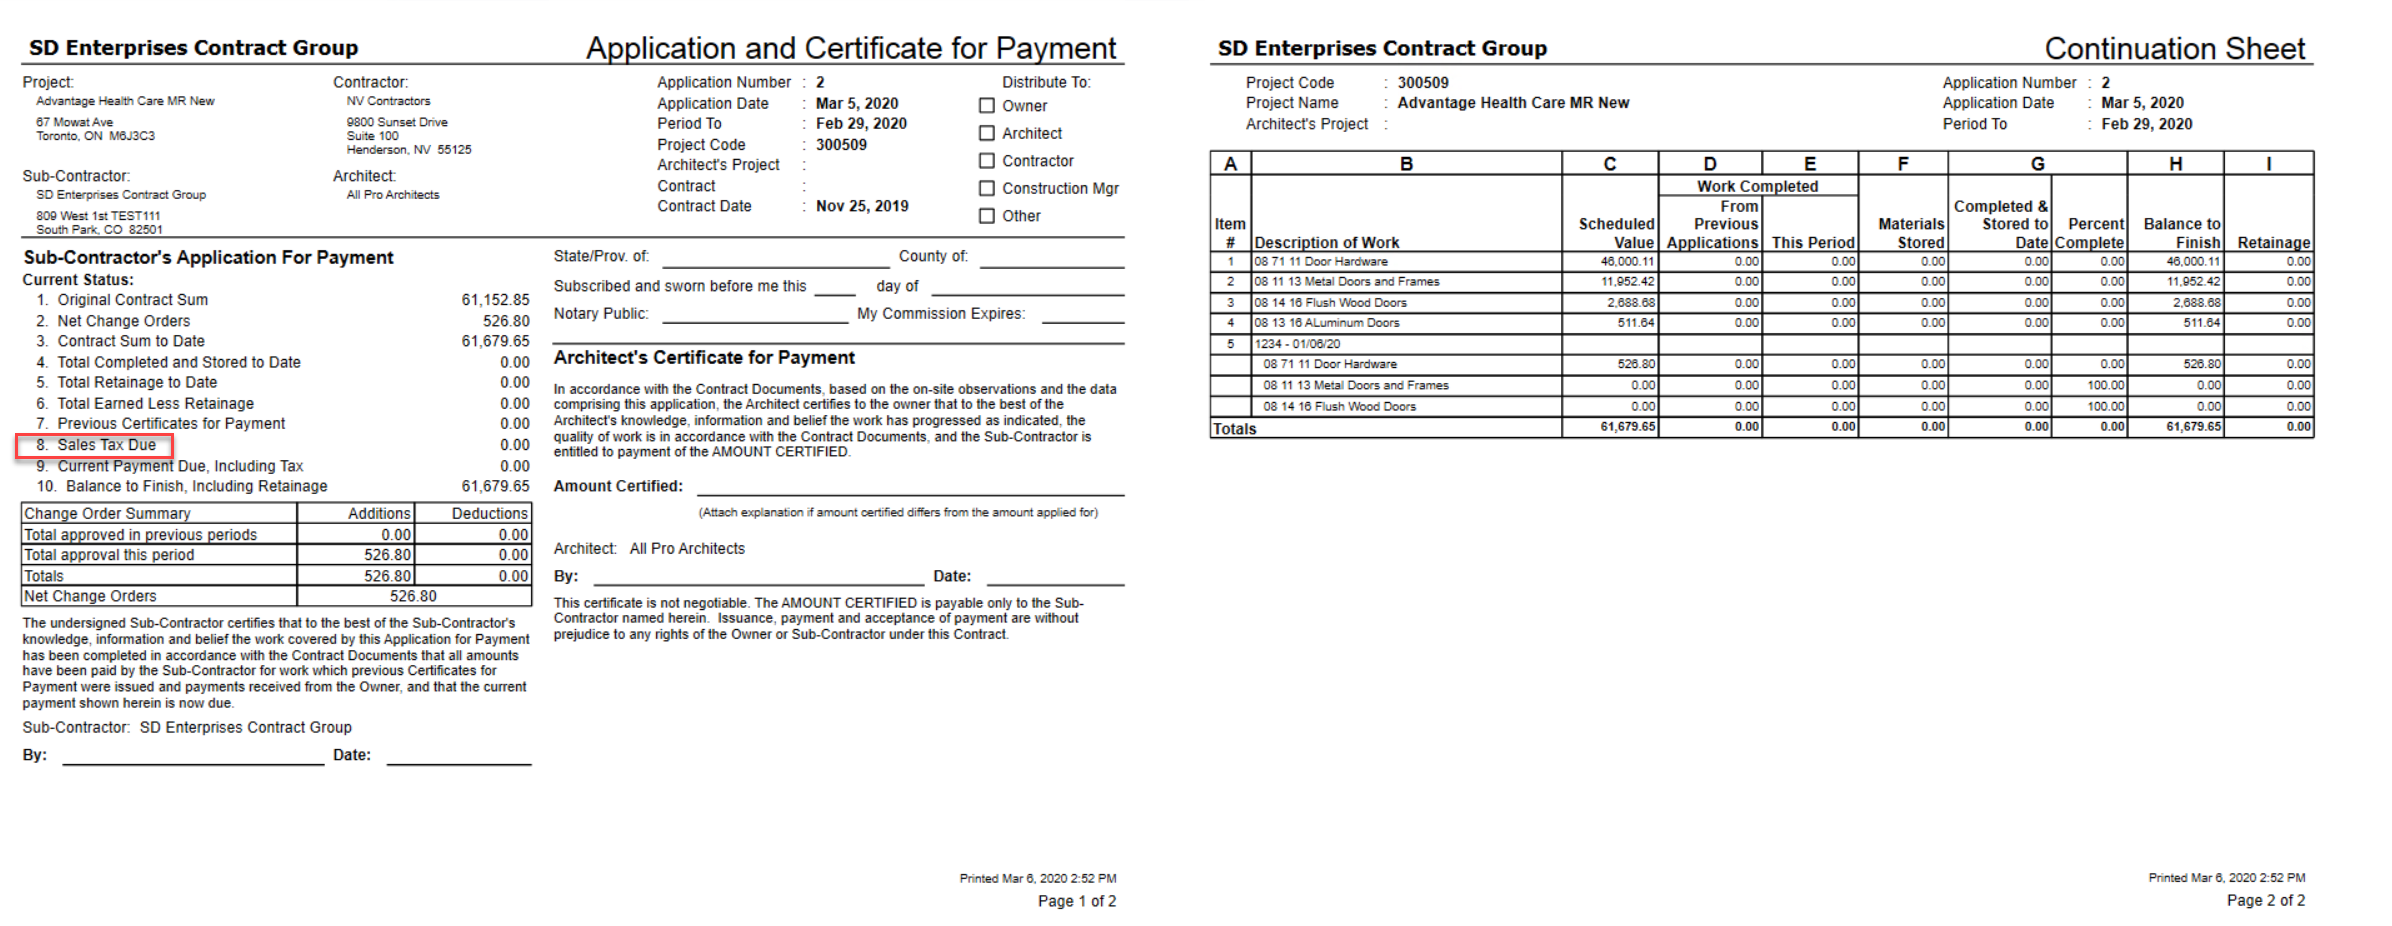 Applicationg and Certificate for Payment report; shows Sales Tax Due line item.